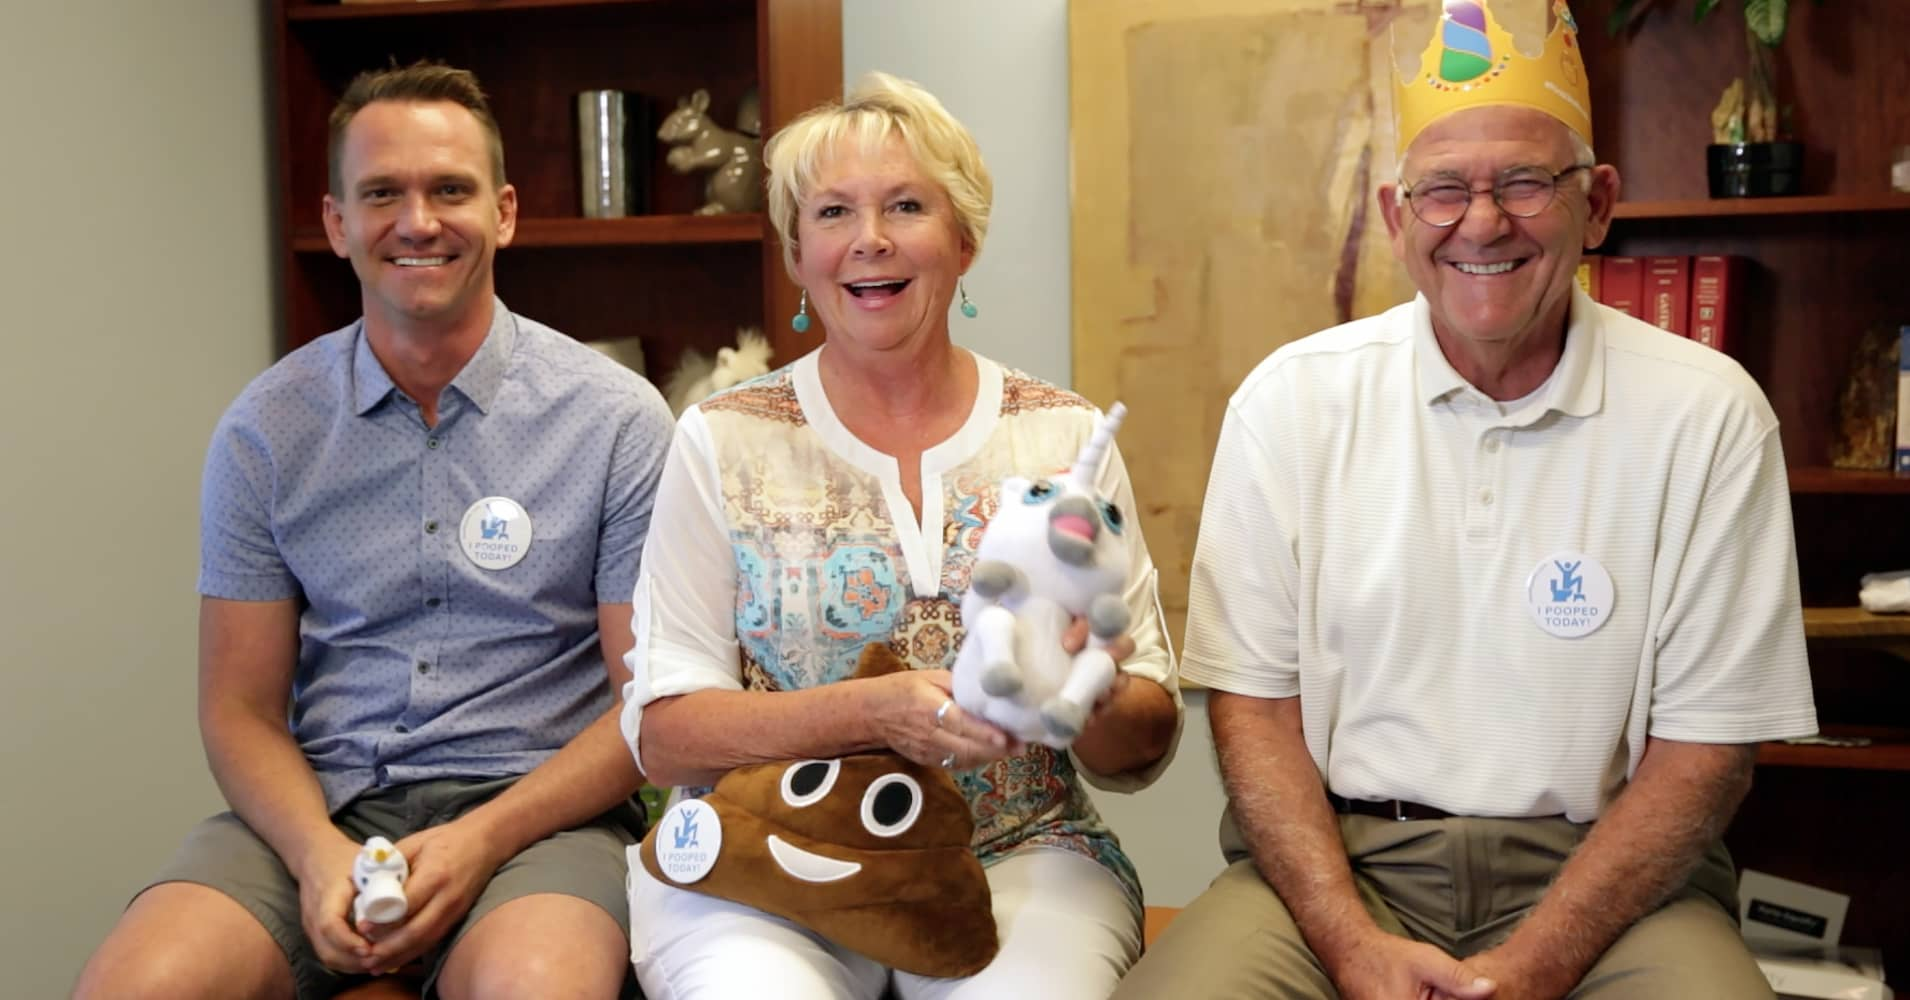 The founders of Squatty Potty. Bobby, Judy and Bill Edwards.